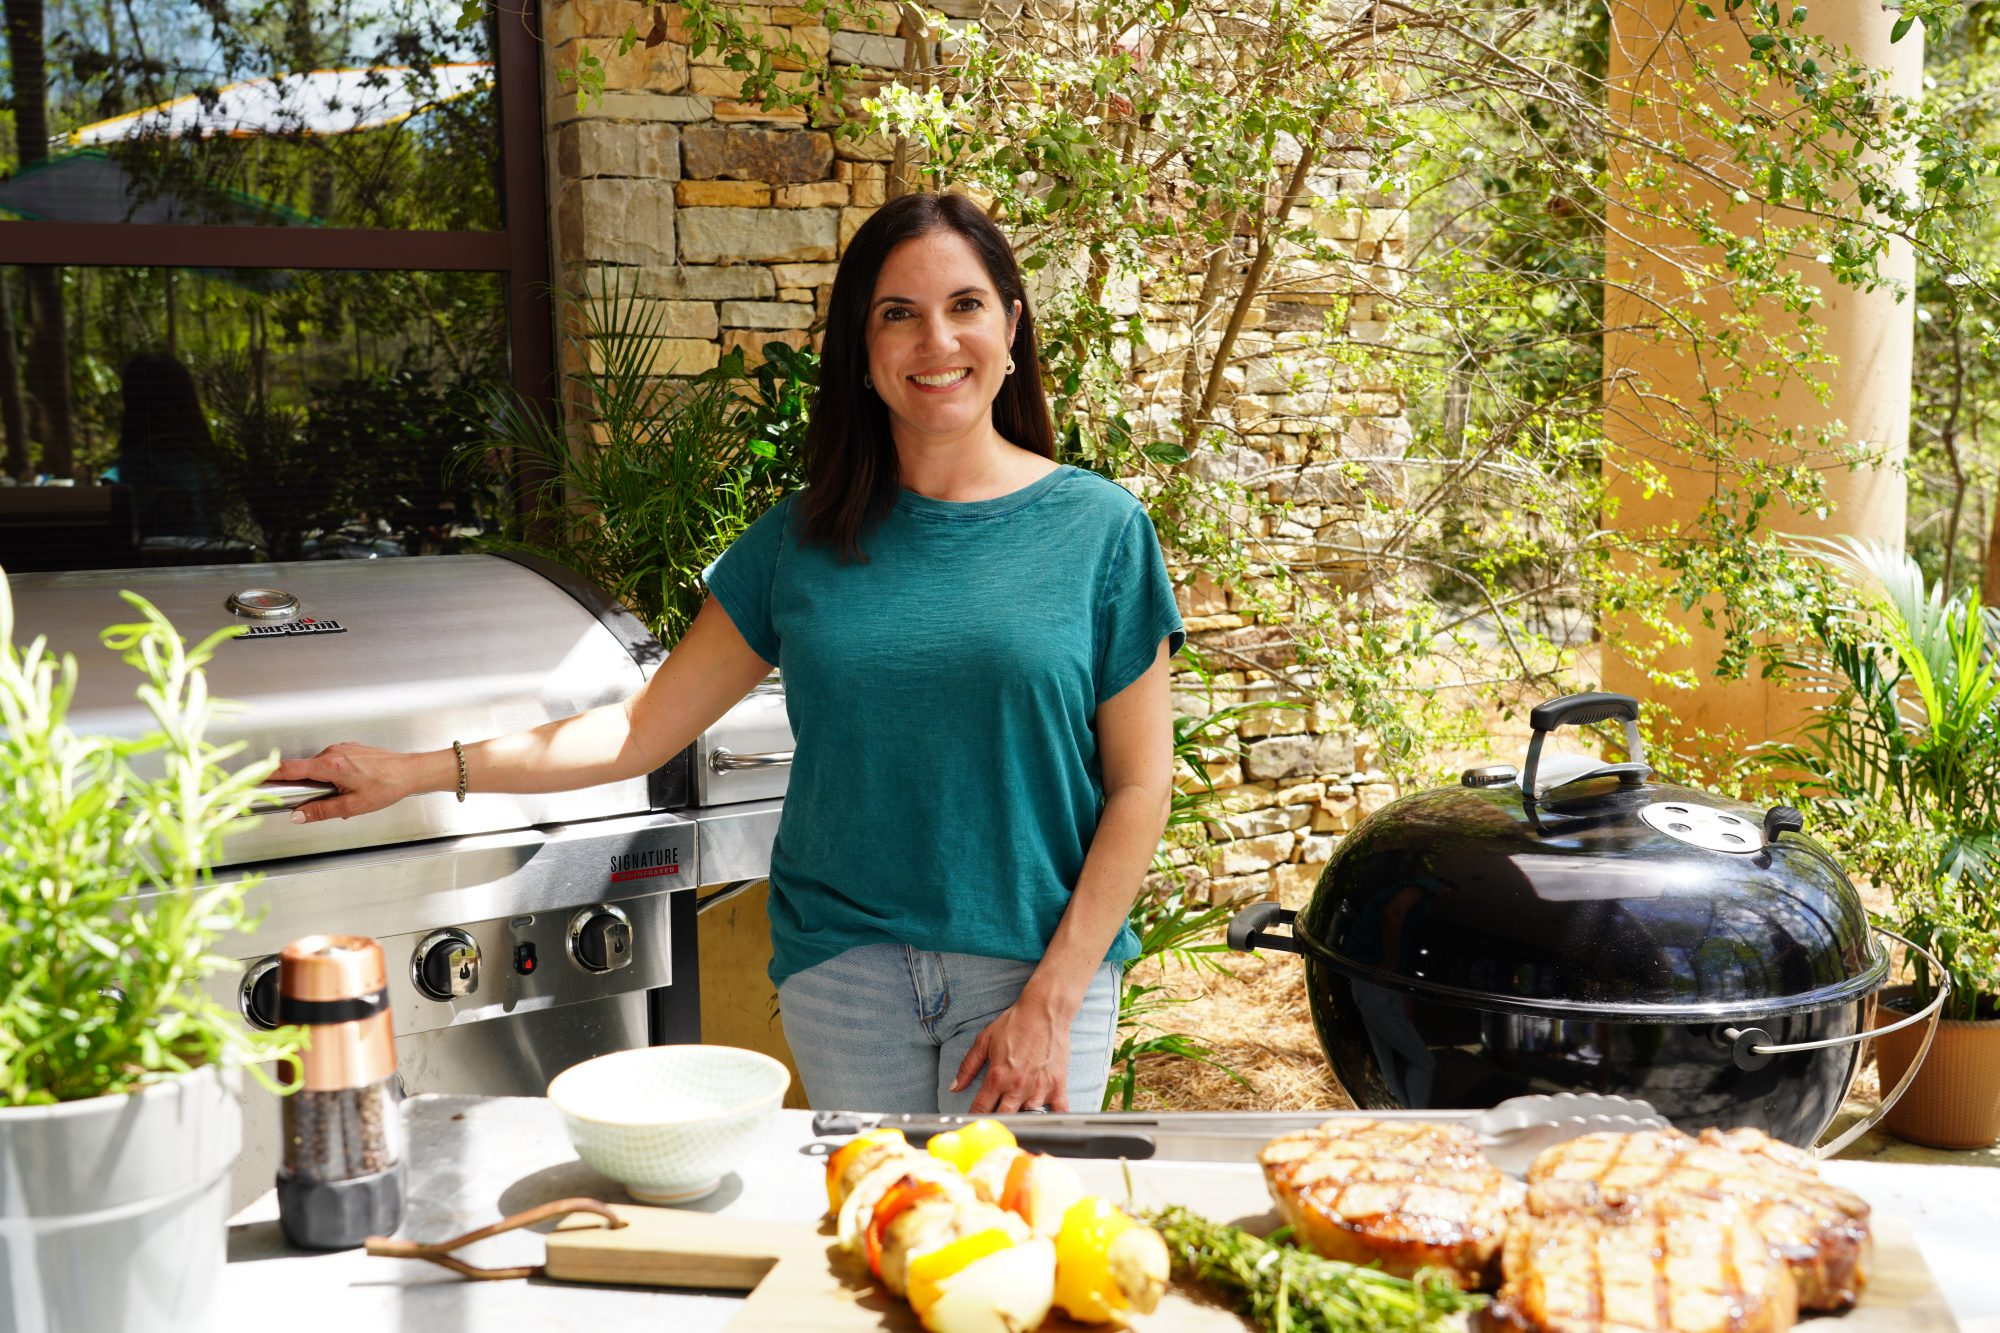 nicole mcmom with gas grill and charcoal grill, plus grilled food and accessories